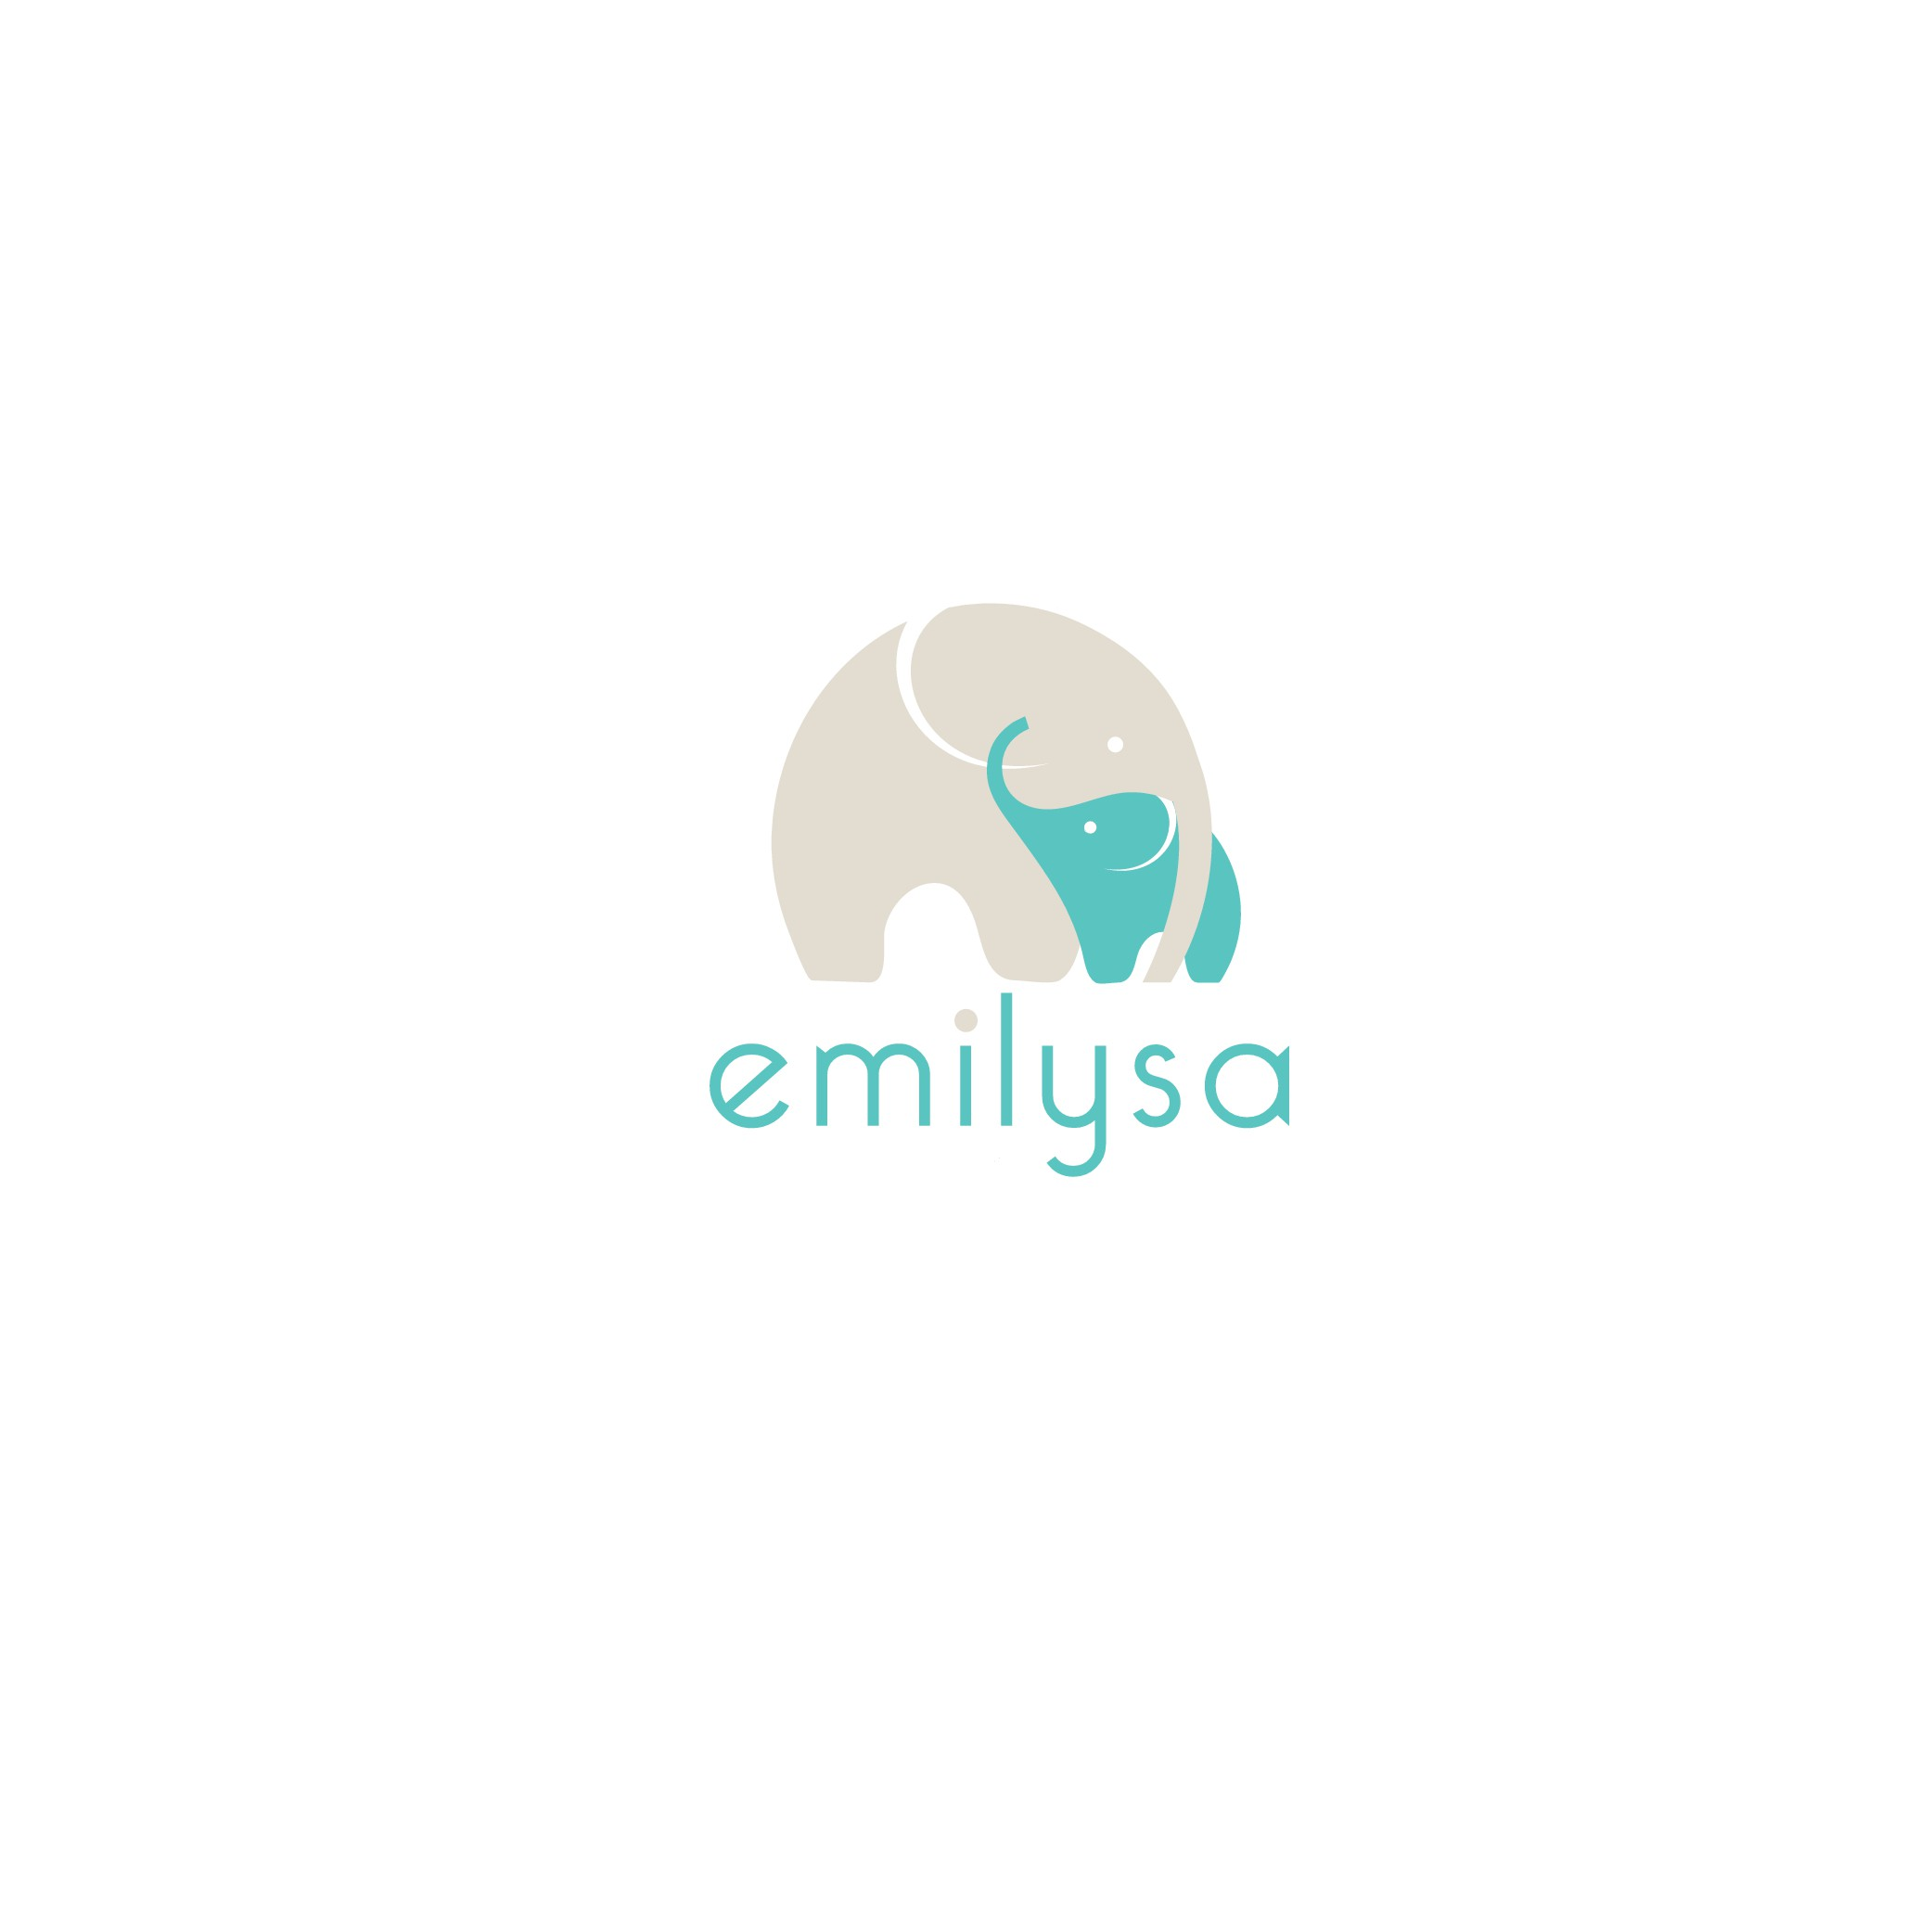 Emilysa needs an amazing new logo for their baby textile brand